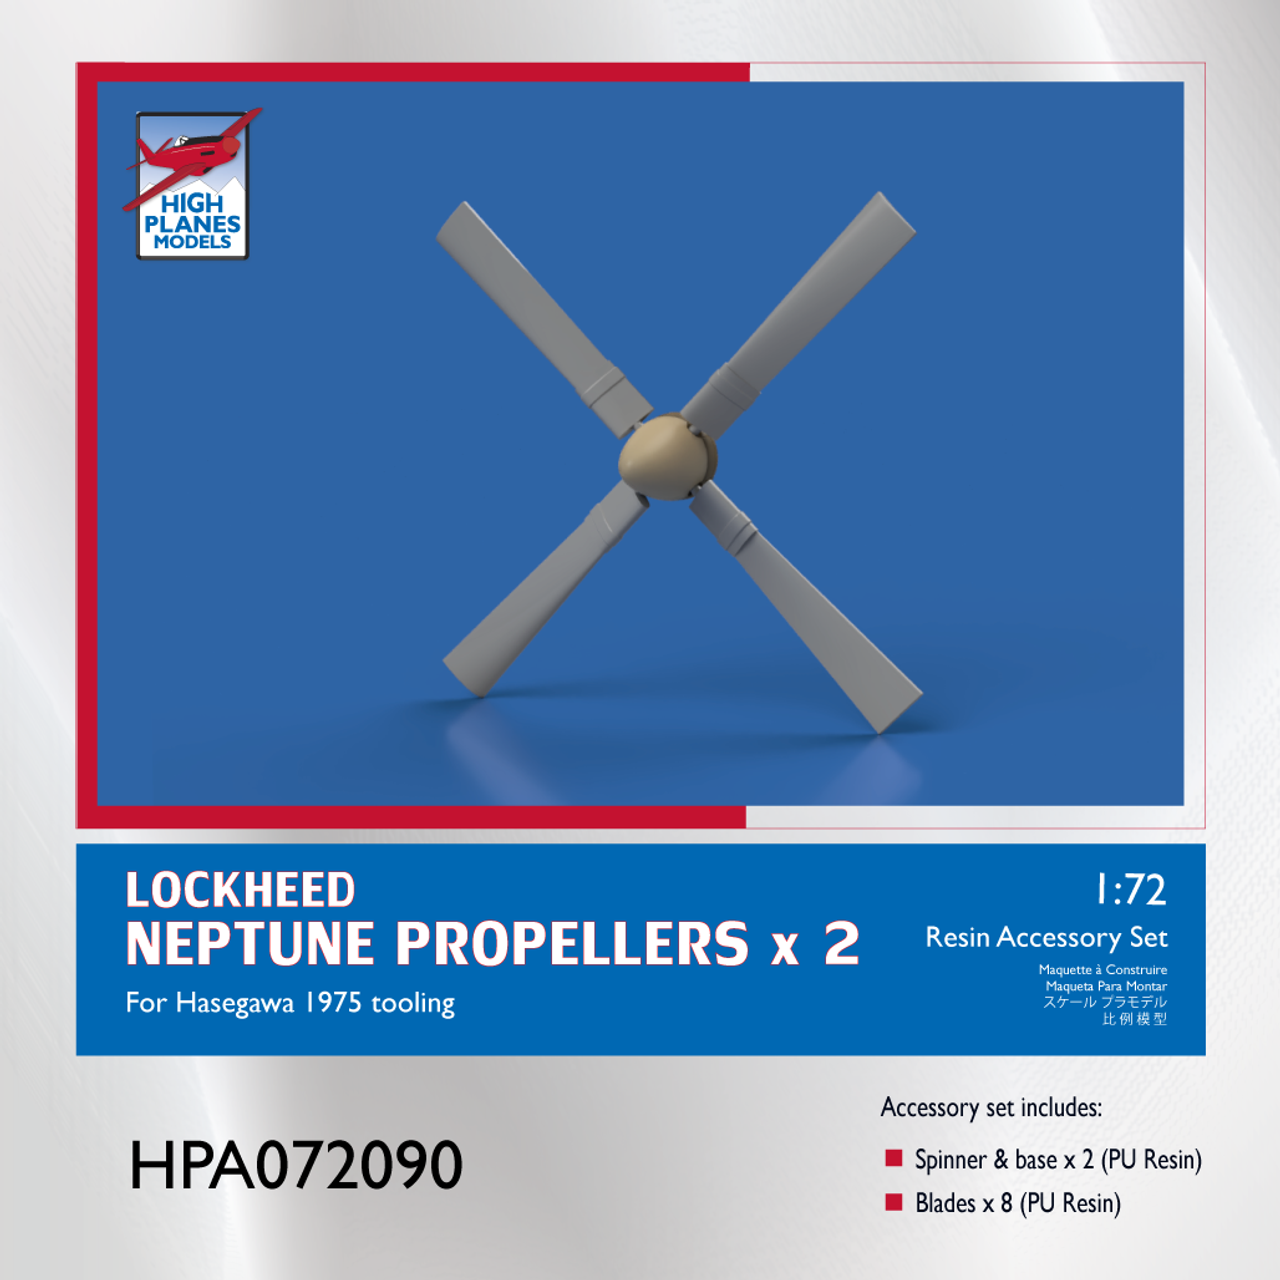 High Planes Lockheed Neptune Propellers x 2 Accessories 1:72 (HPA072090